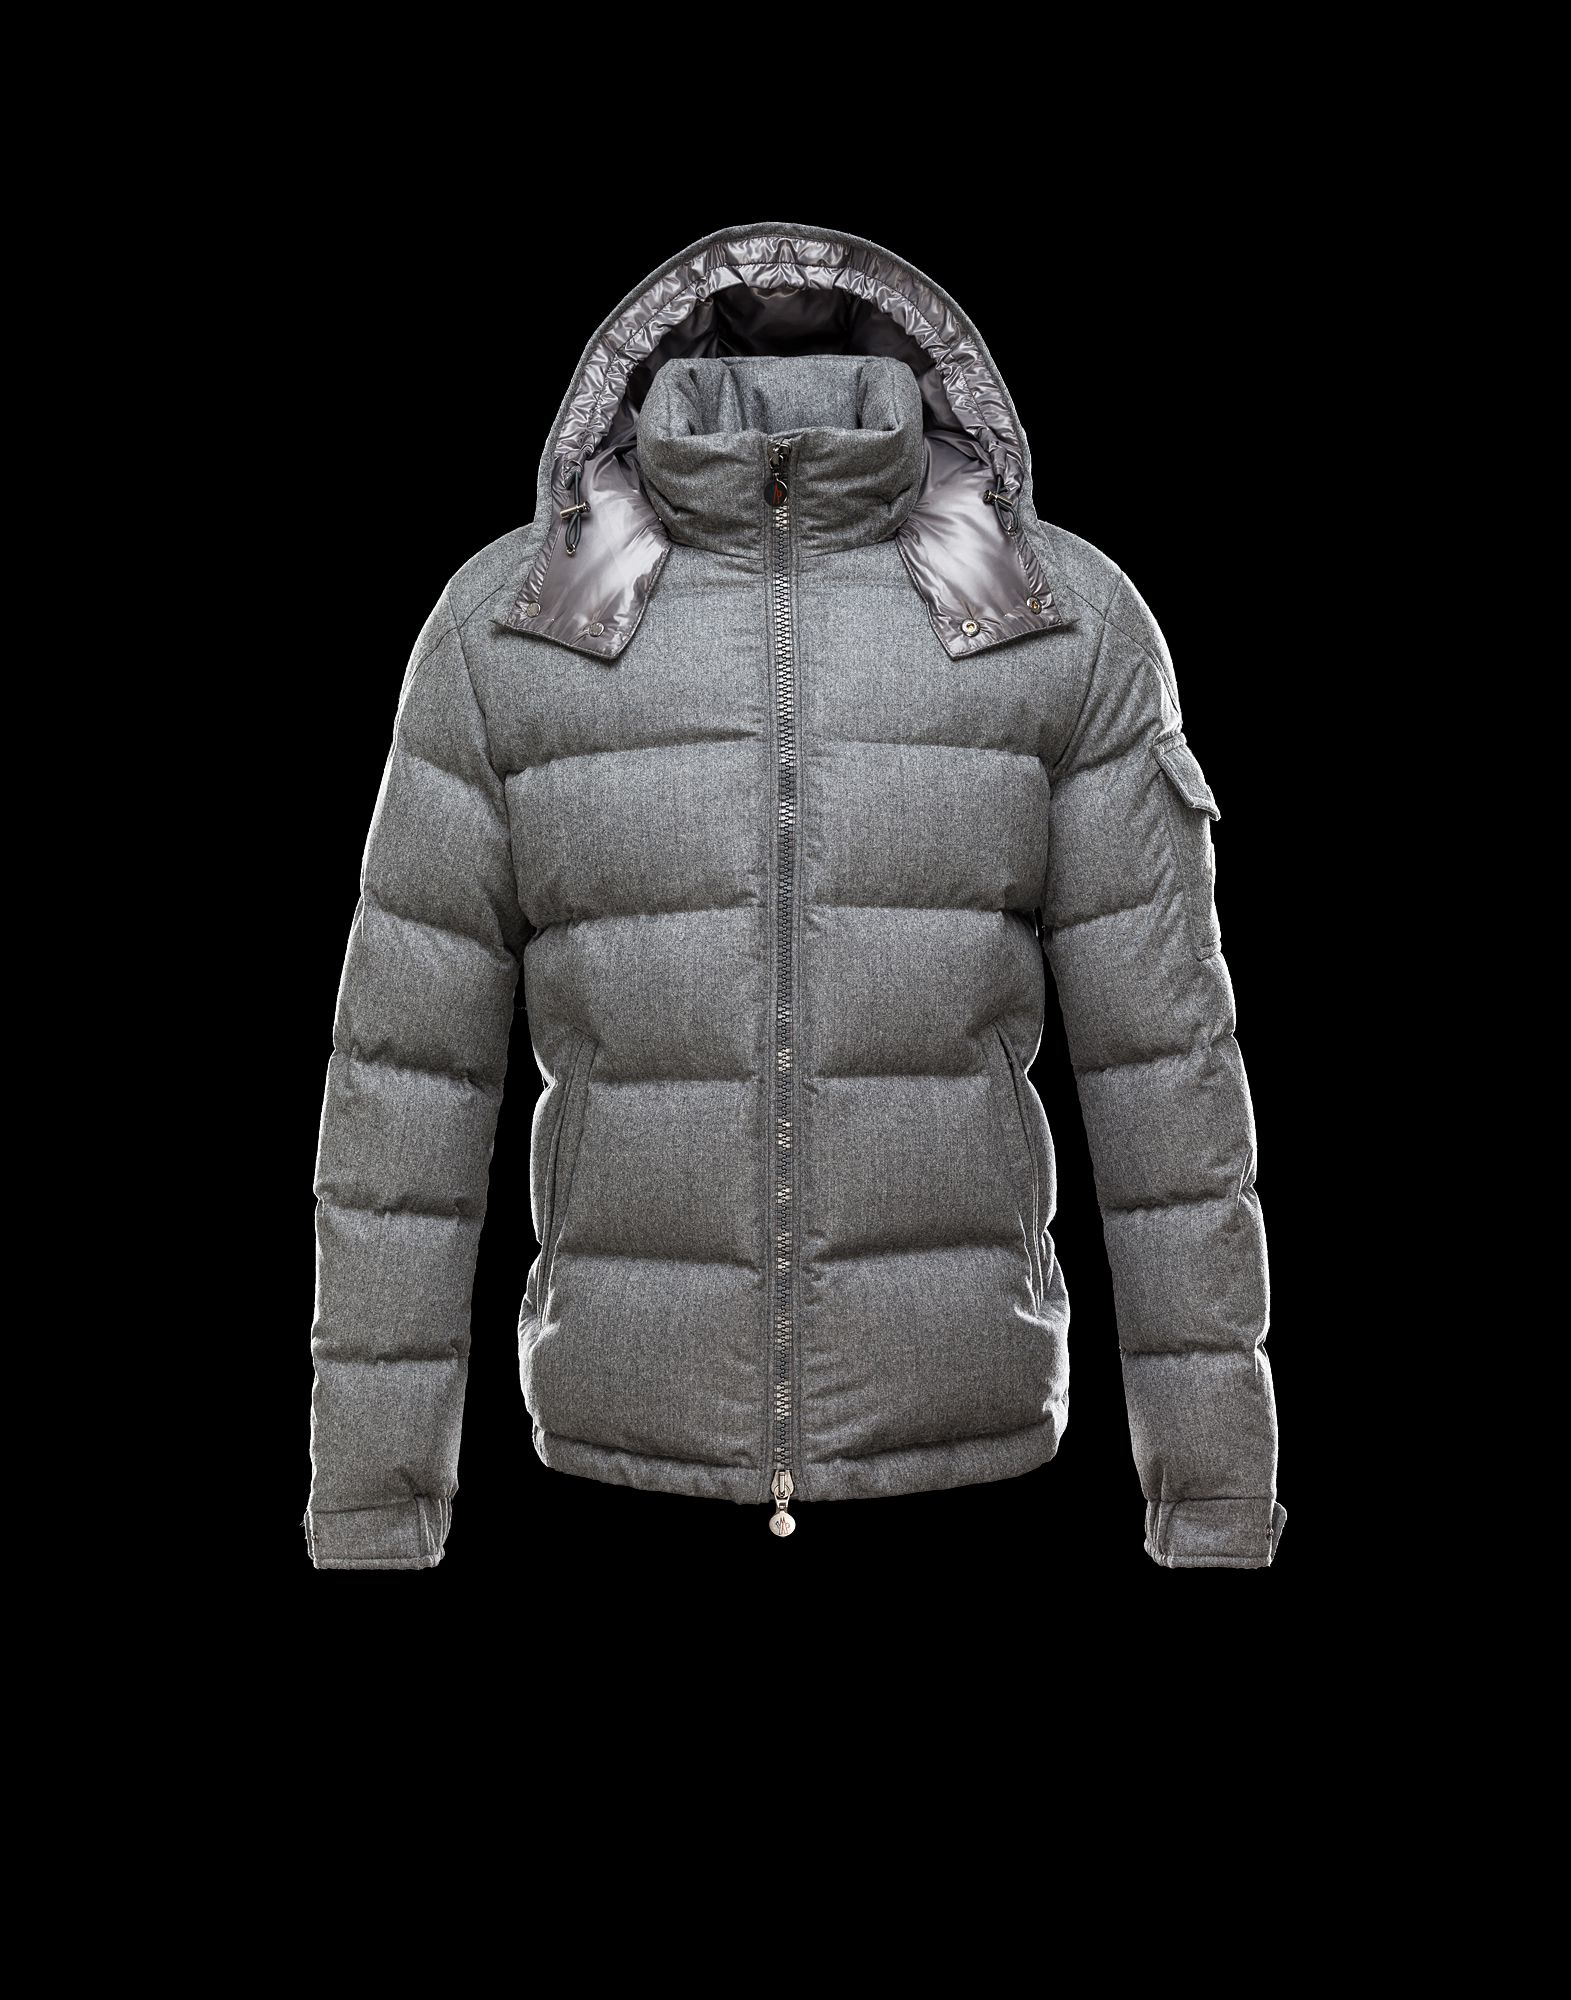 Moncler Montgenevre Winter Jackets For Men Gray